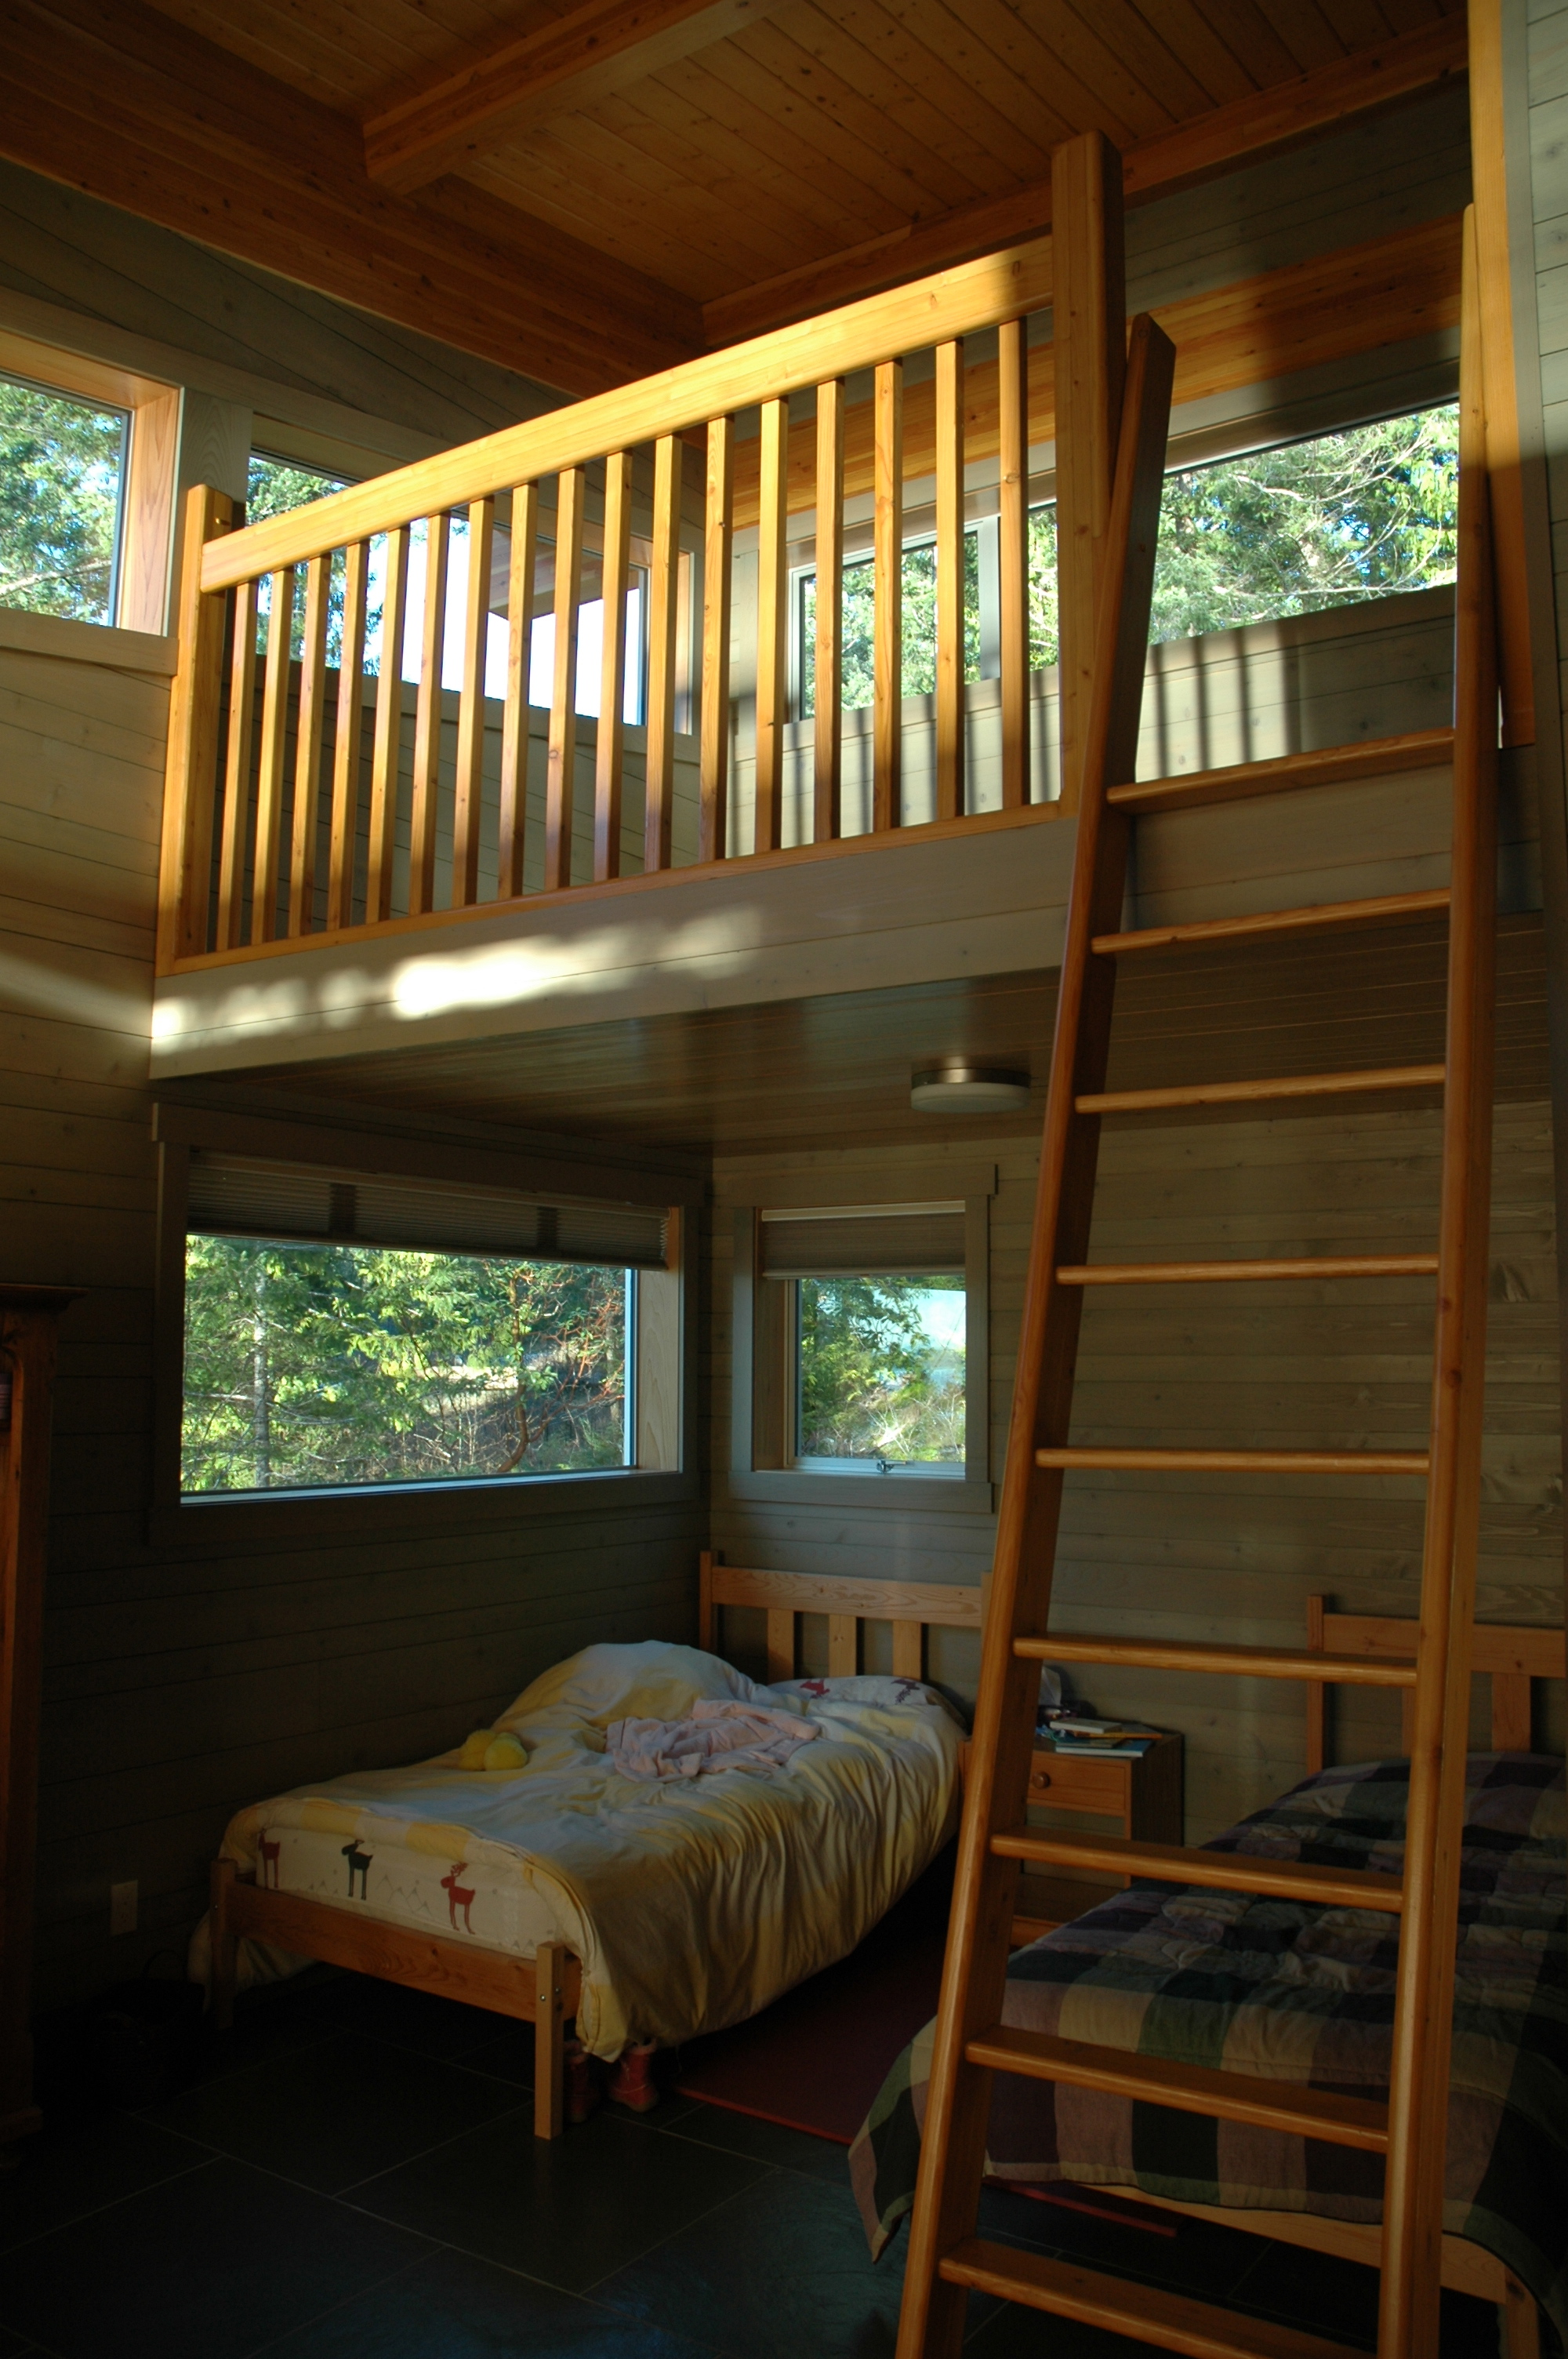 Kids bedroom with loft